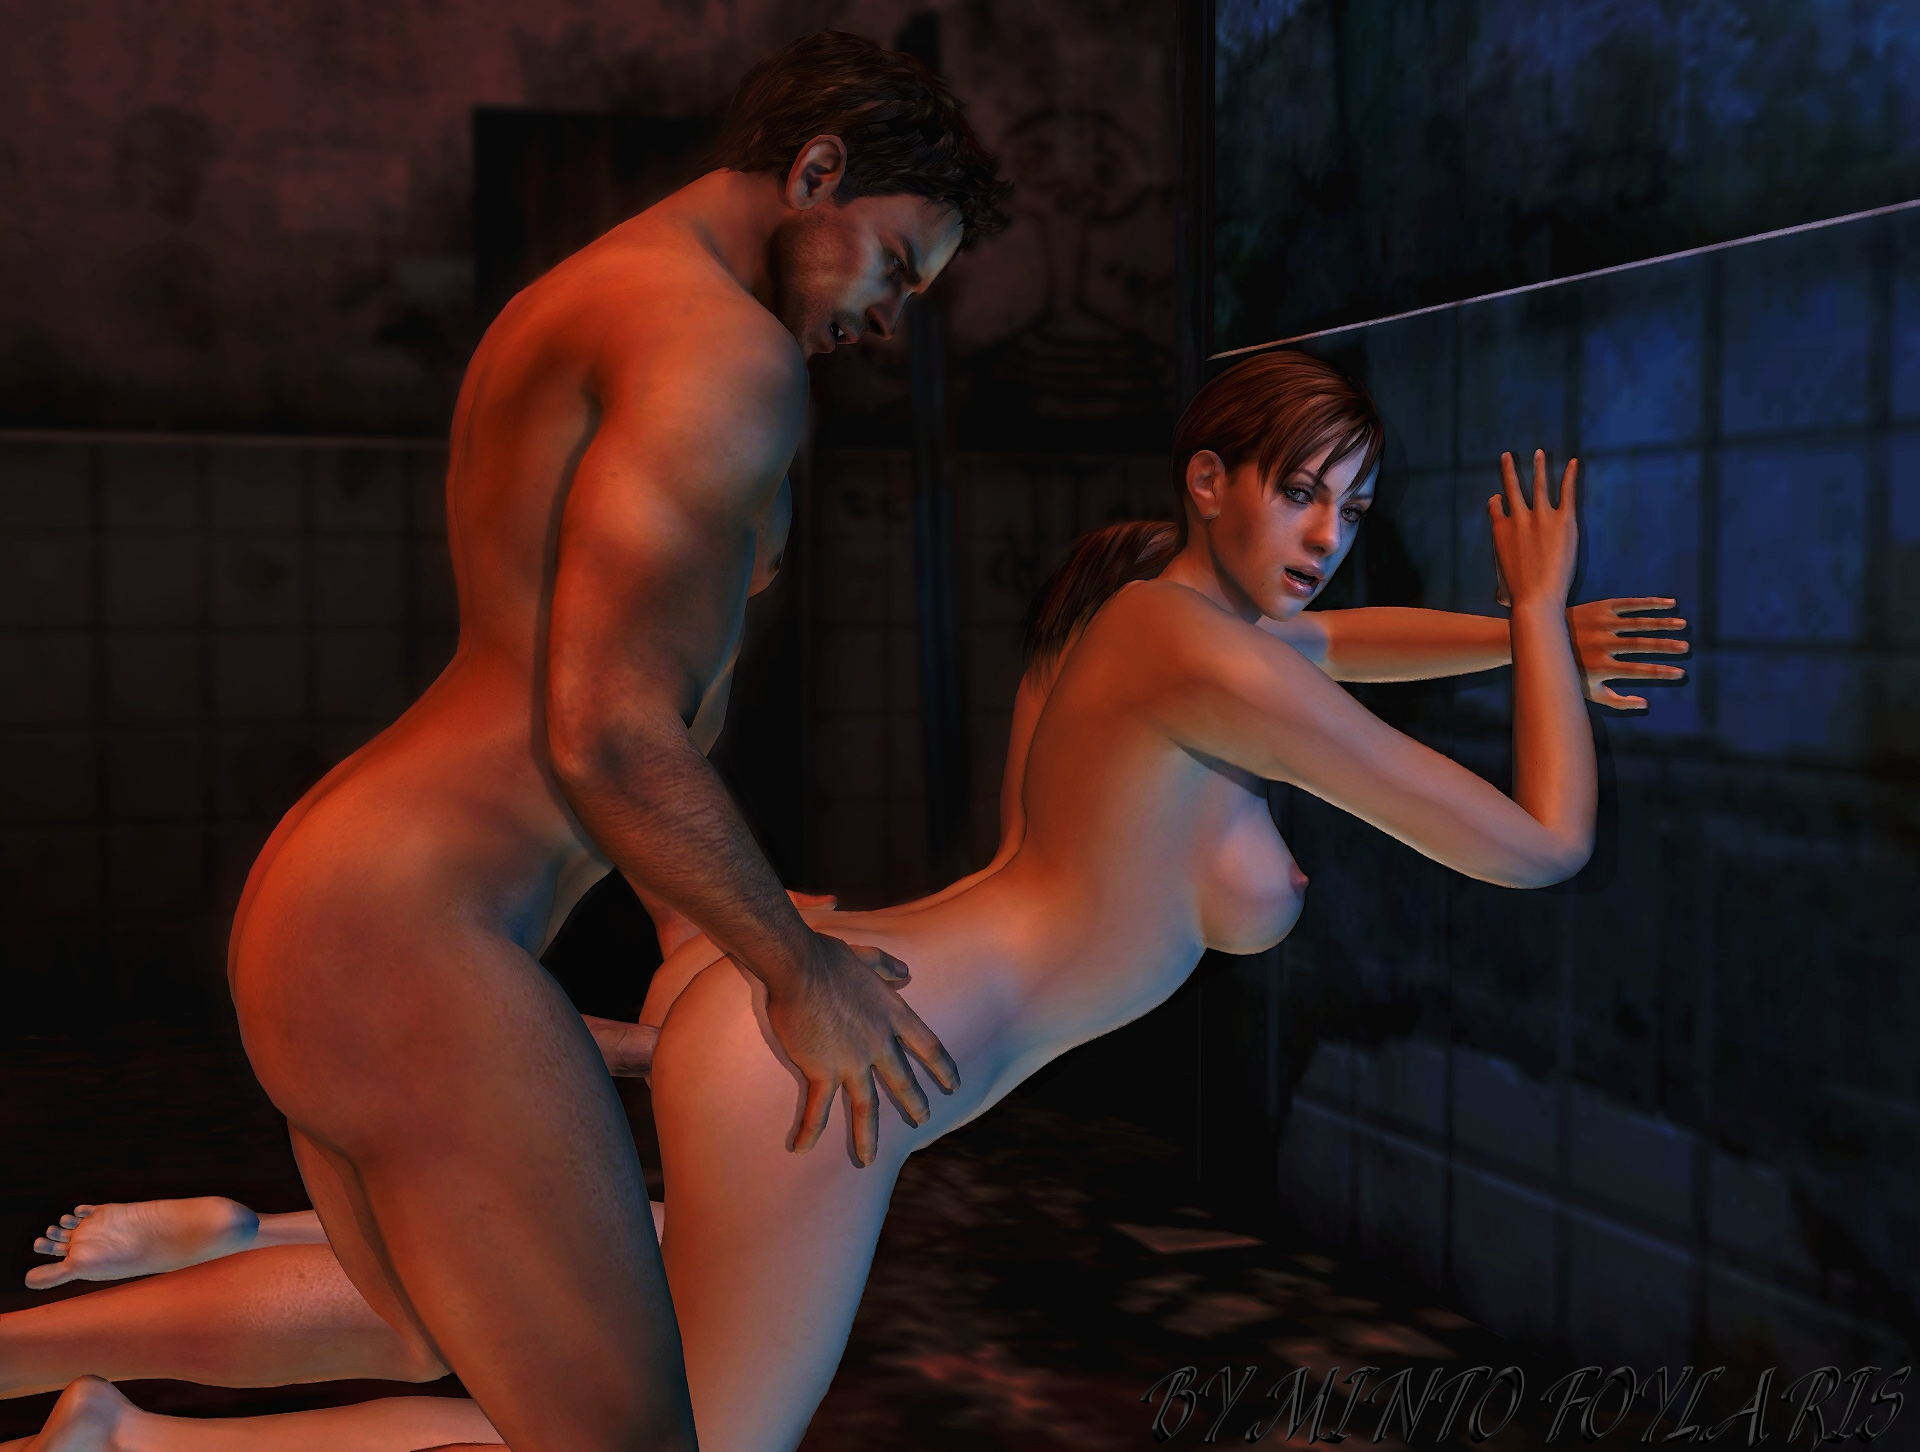 Nude resident evil fan art sexual download